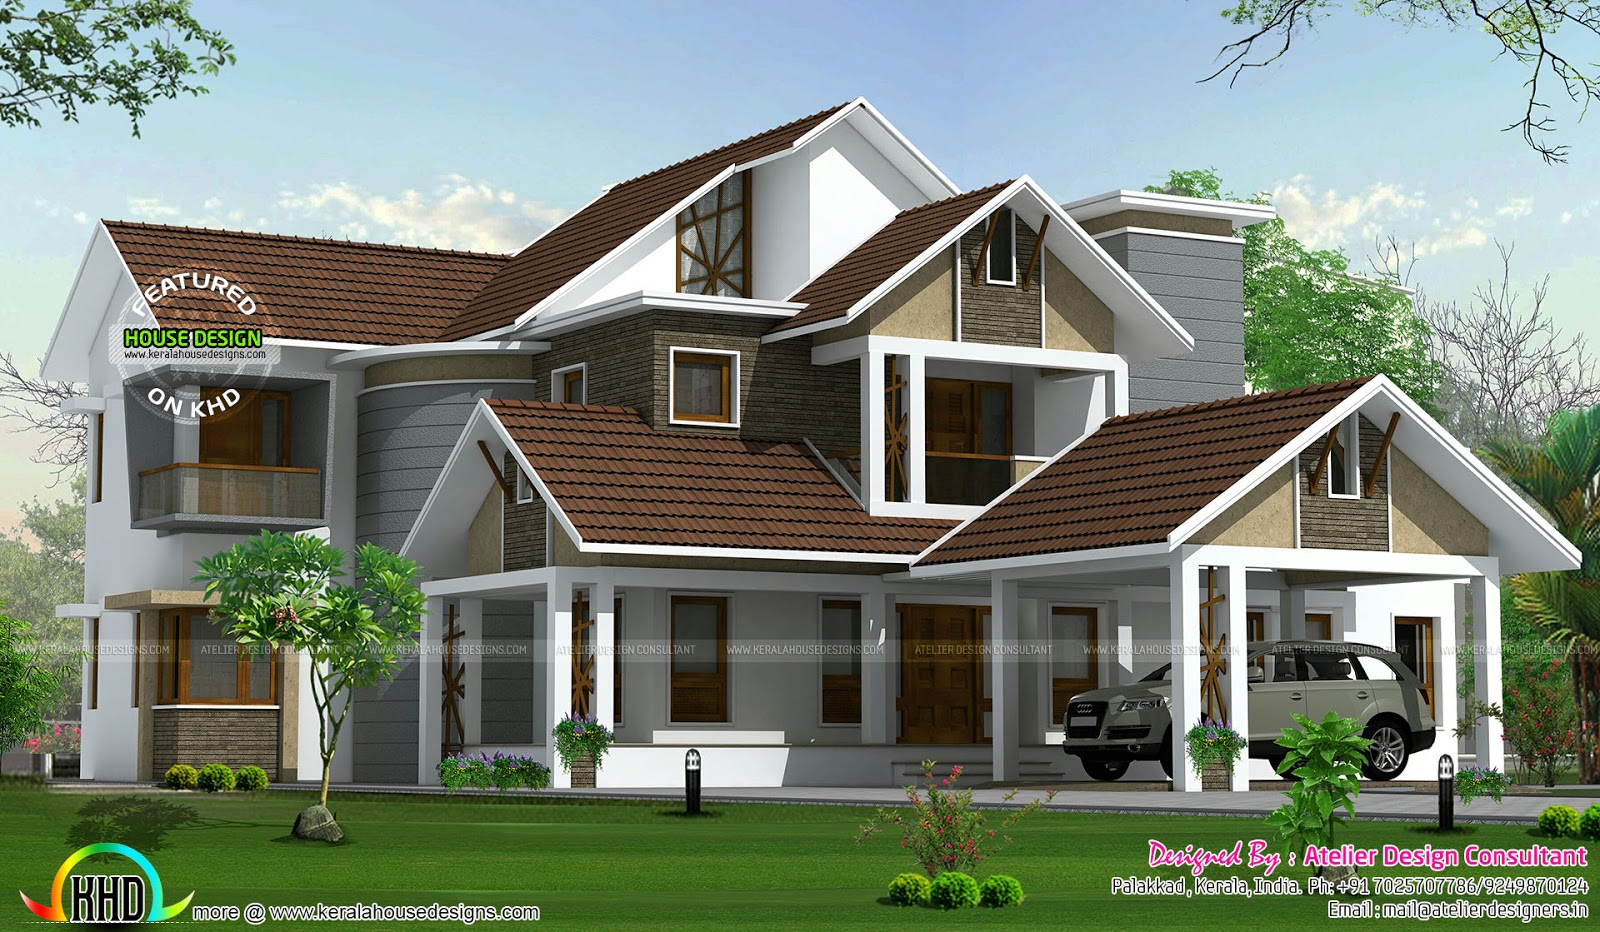 Beautiful slope roof home kerala home design and floor plans for Beautiful kerala house plans